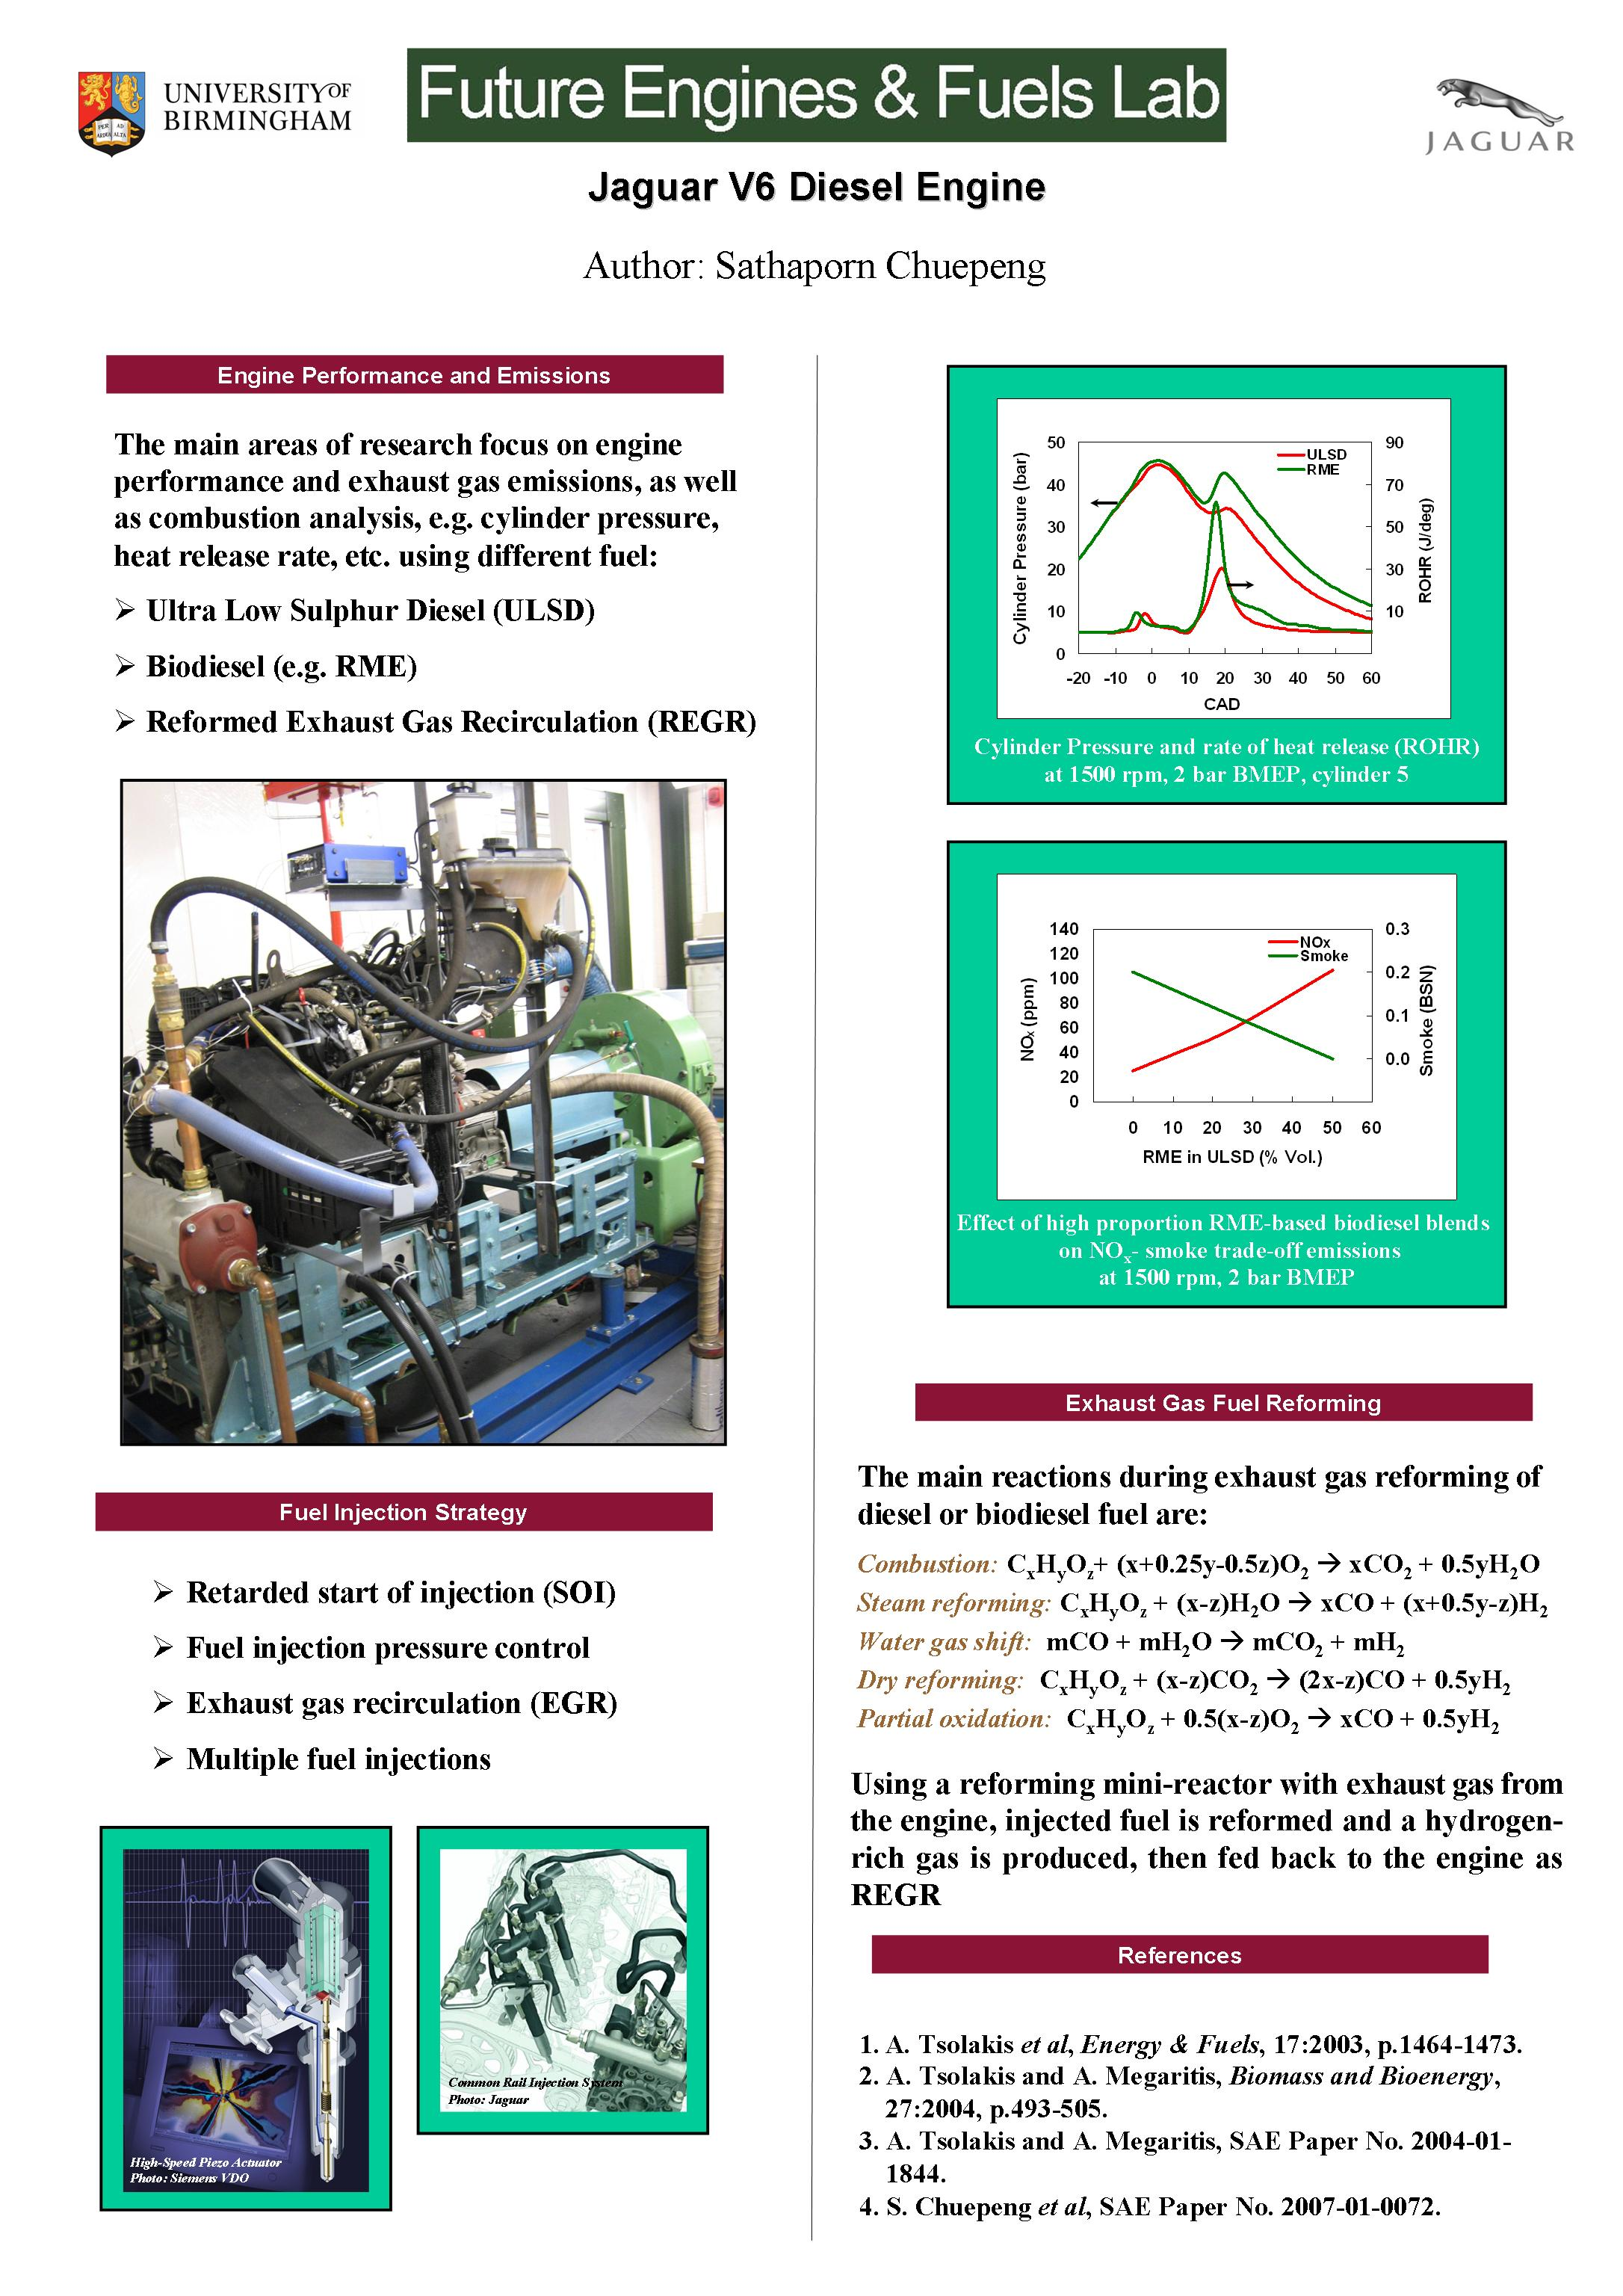 research papers on diesel engines In 1895, rudolf diesel invented the diesel engine and used biodiesel made from peanut oil to fuel the engine (emery 44) biodeisel is made from domestic, renewable vegetable products like soybean oil and recycled cooking grease (emery 44).